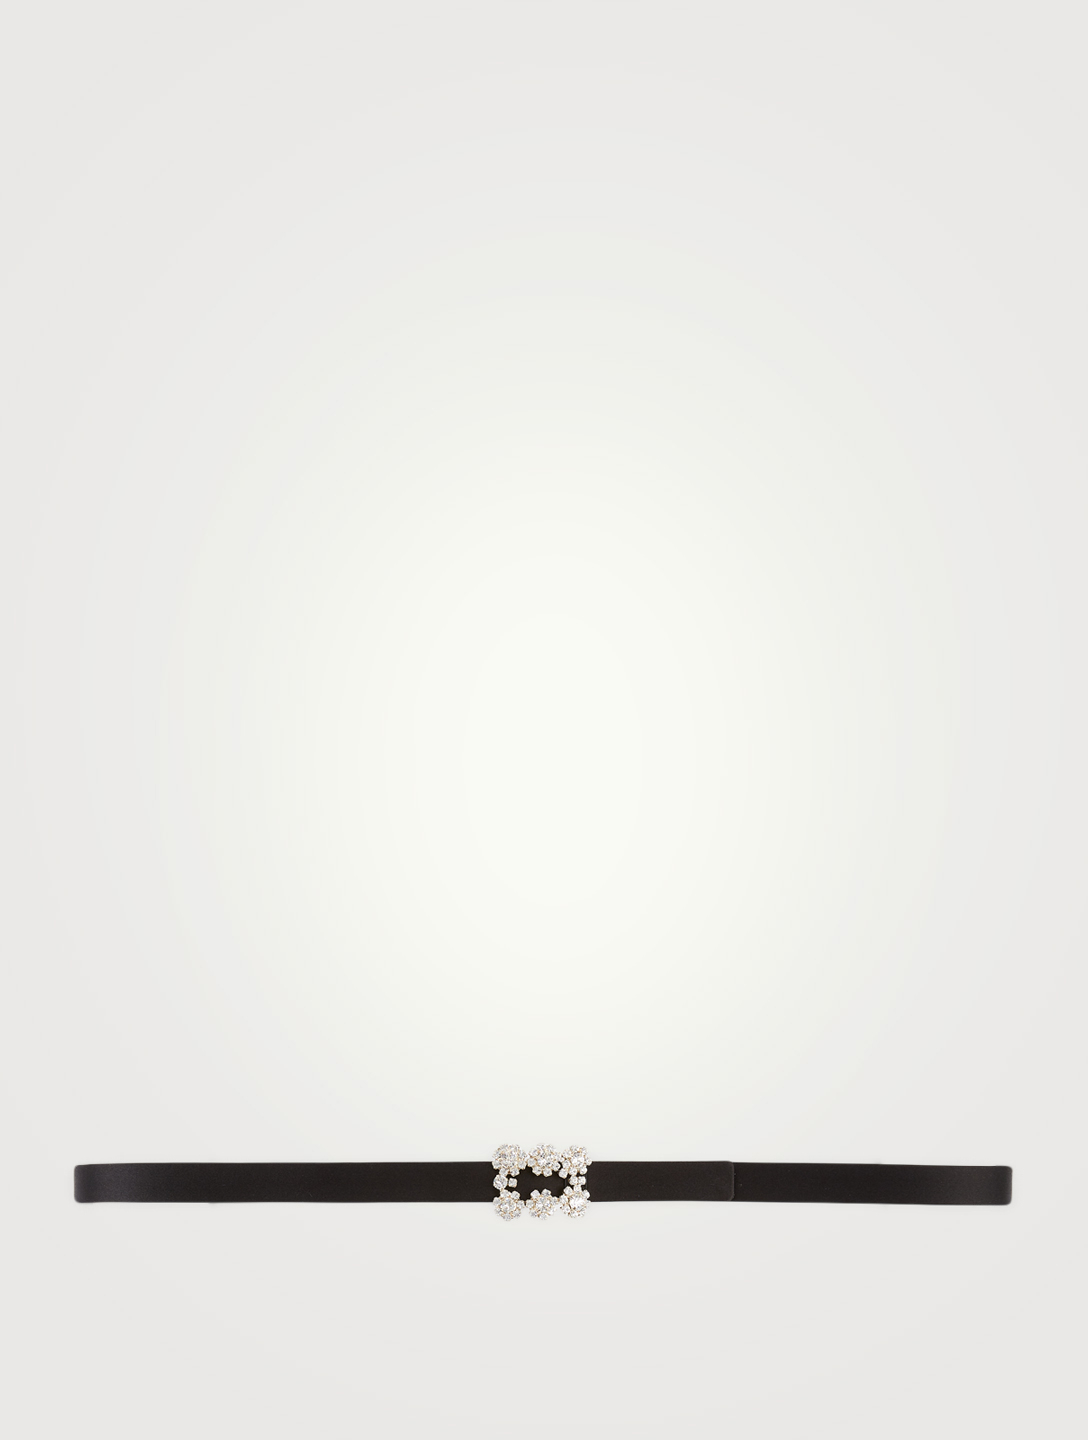 ROGER VIVIER Strass Flower Buckle Silk Satin Belt Women's Black